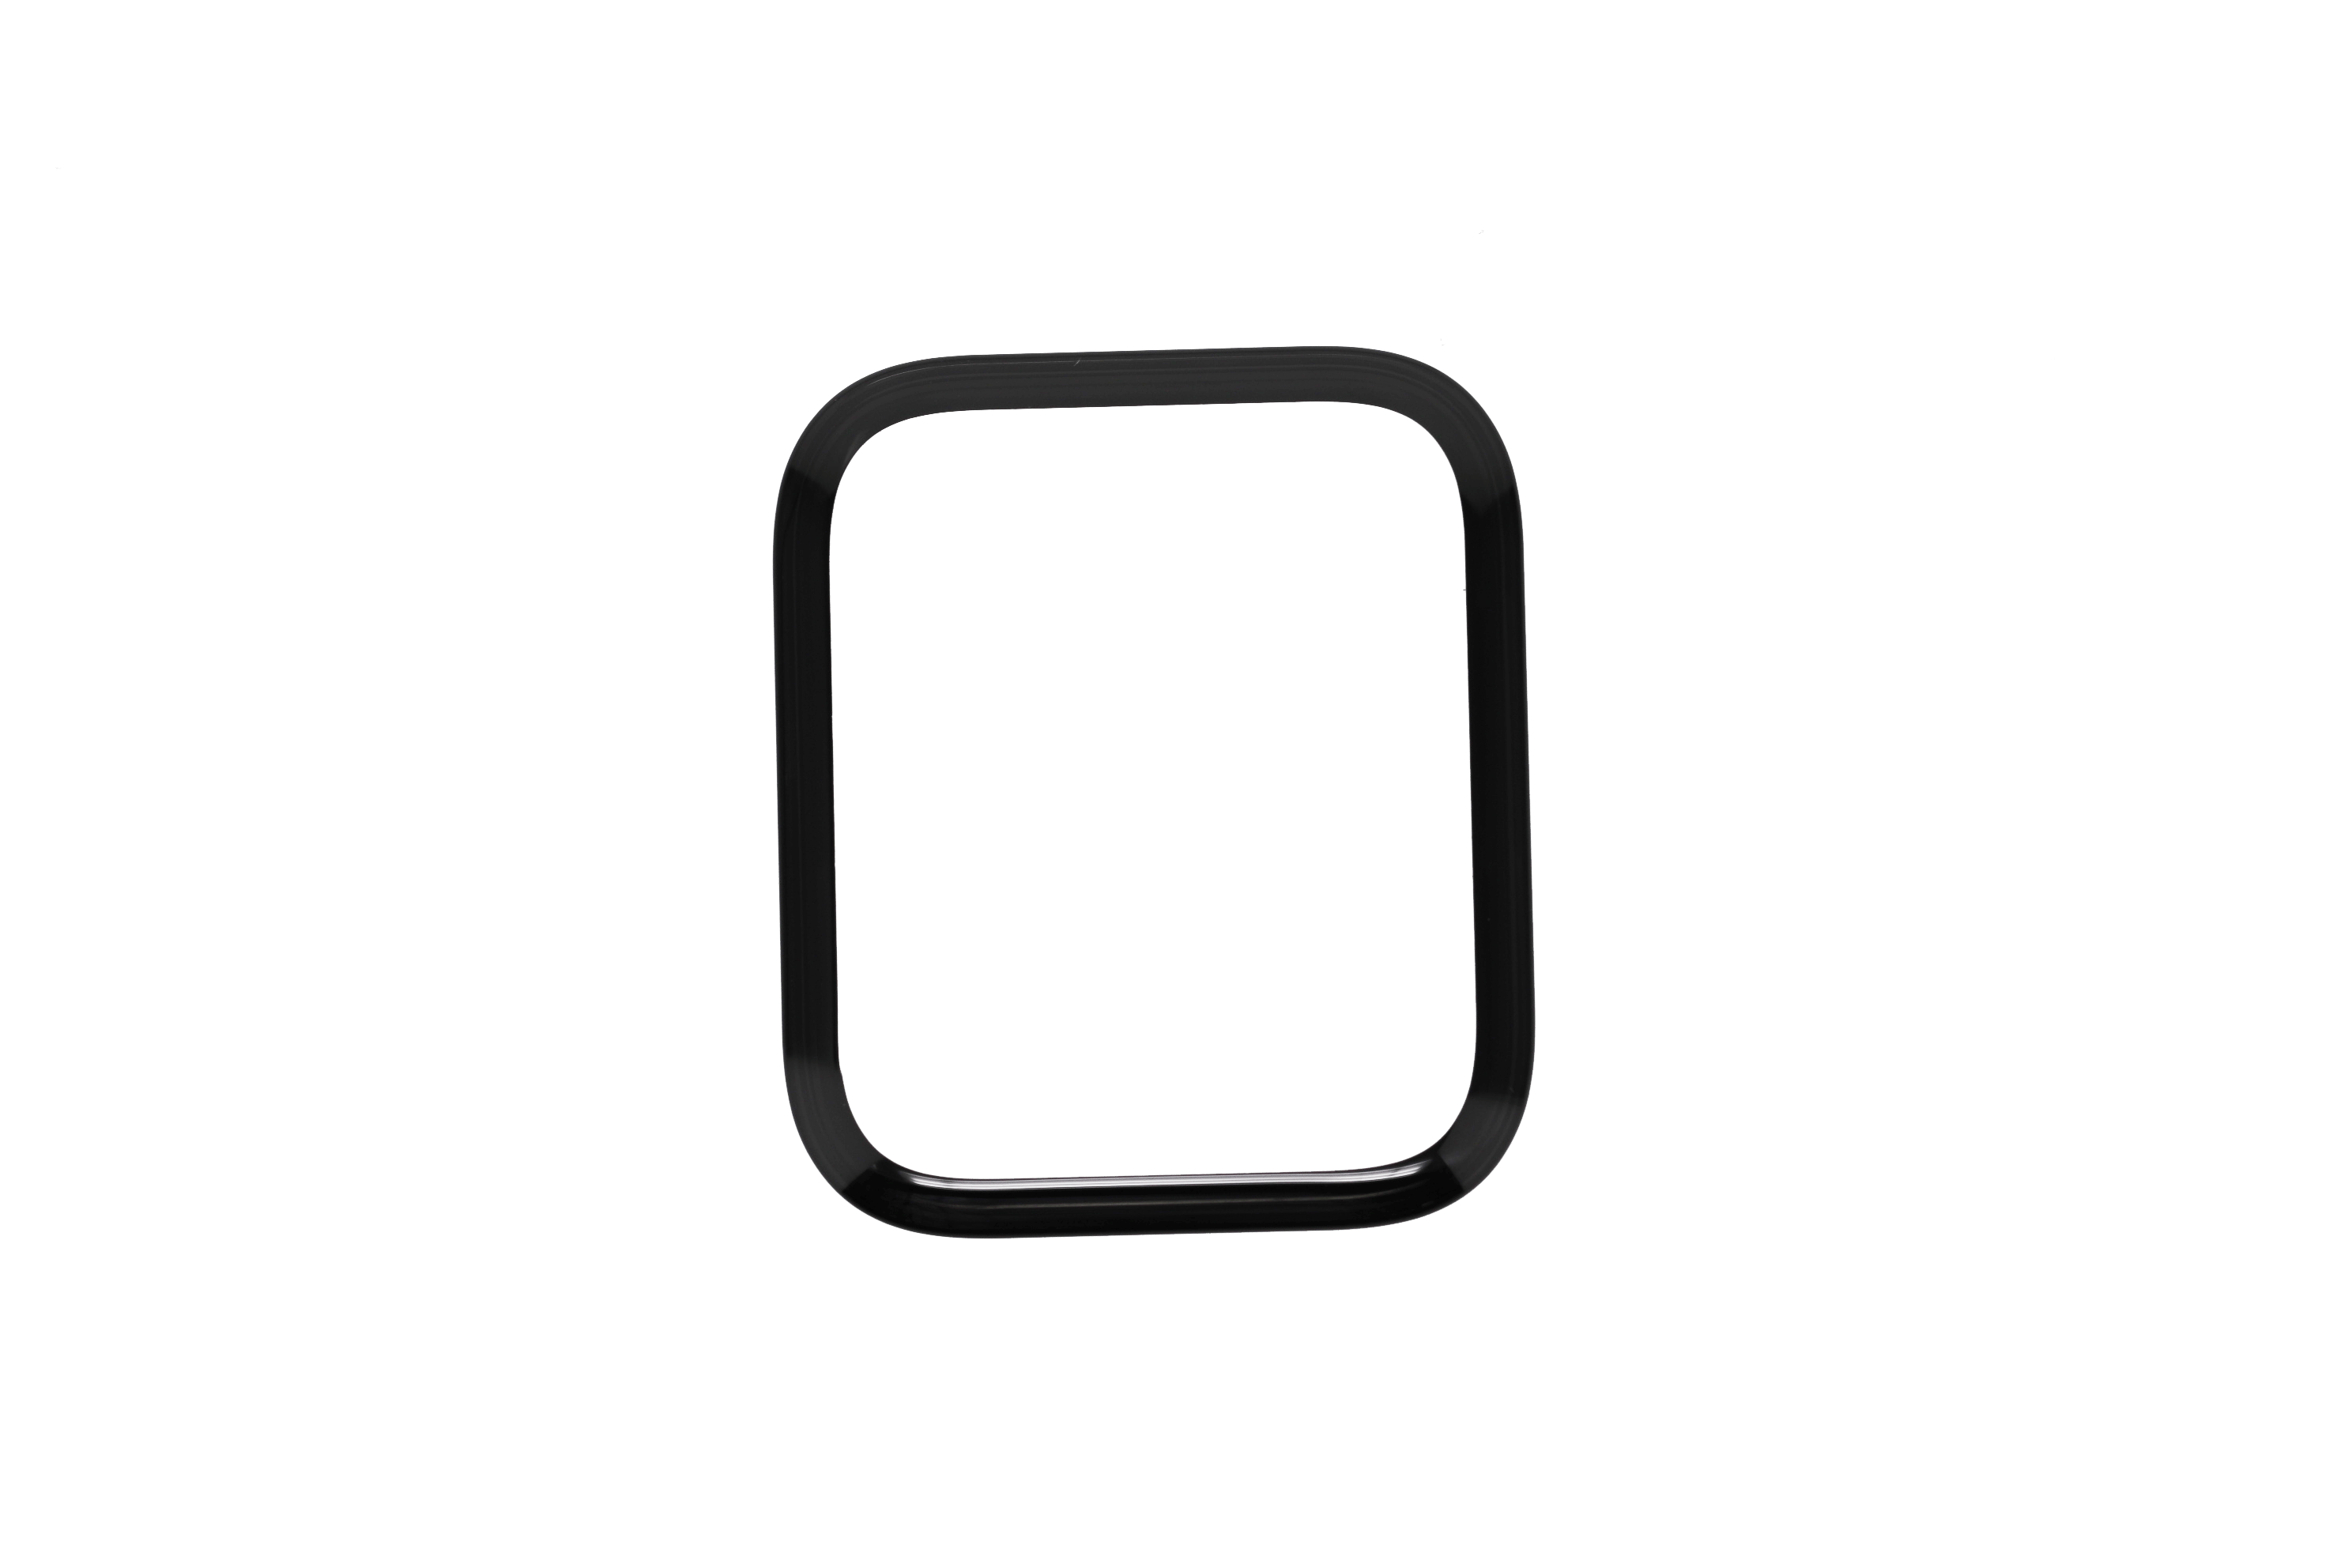 Glass Lens For Use With Apple Watch Series 4 44mm